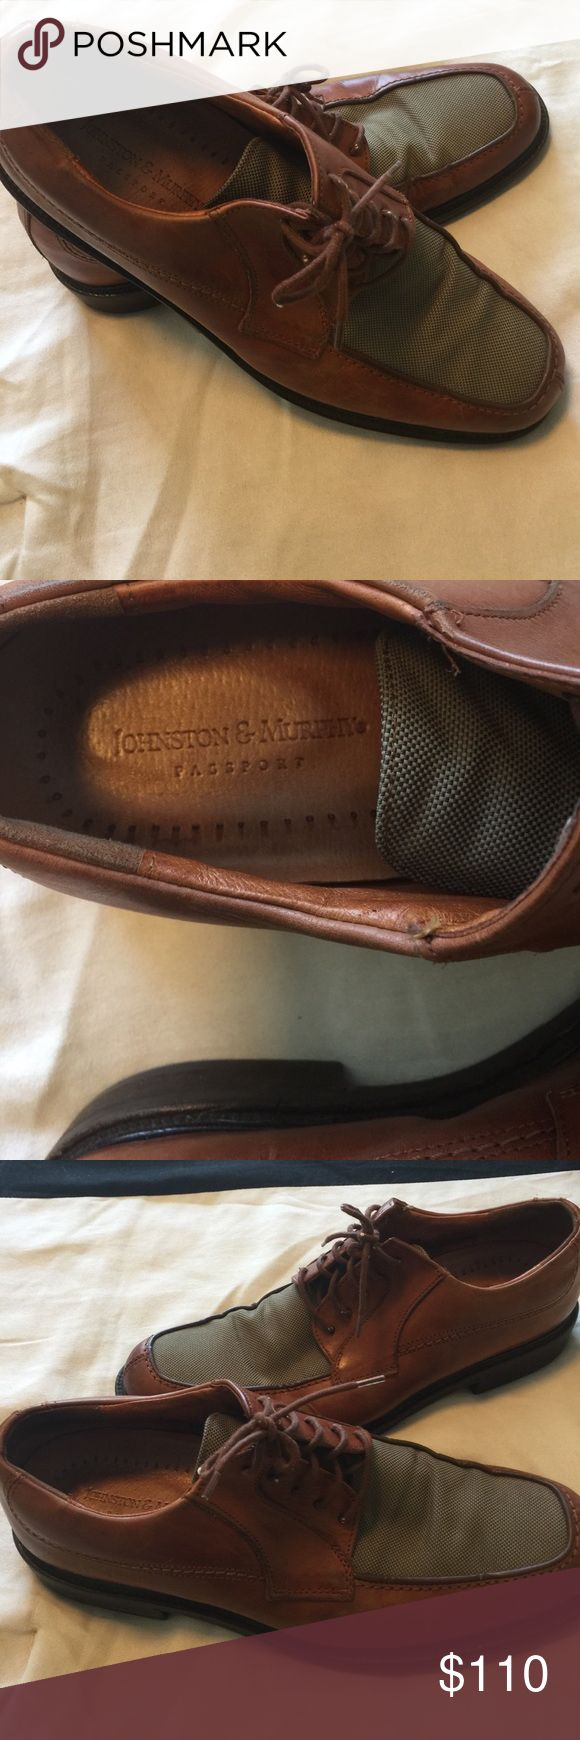 Men's 10 1/2 Johnson and Murphy shoes Men's 10 1/2 Johnson and Murphy casual shoes excellent condition and extremely comfortable. Johnson and Murphy Shoes Oxfords & Derbys